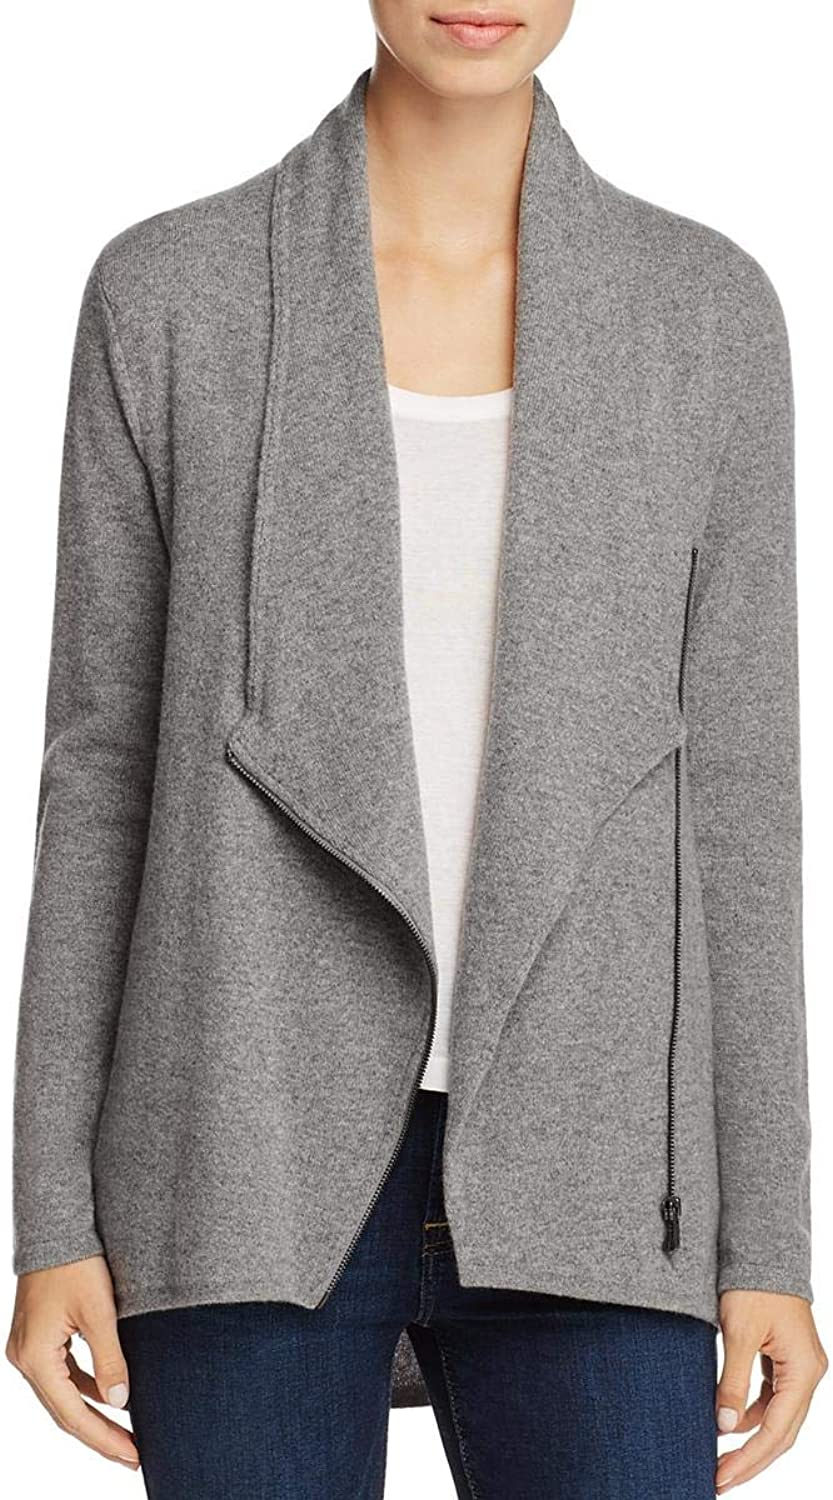 Private Label Womens Cashmere Zip Front Cardigan Sweater